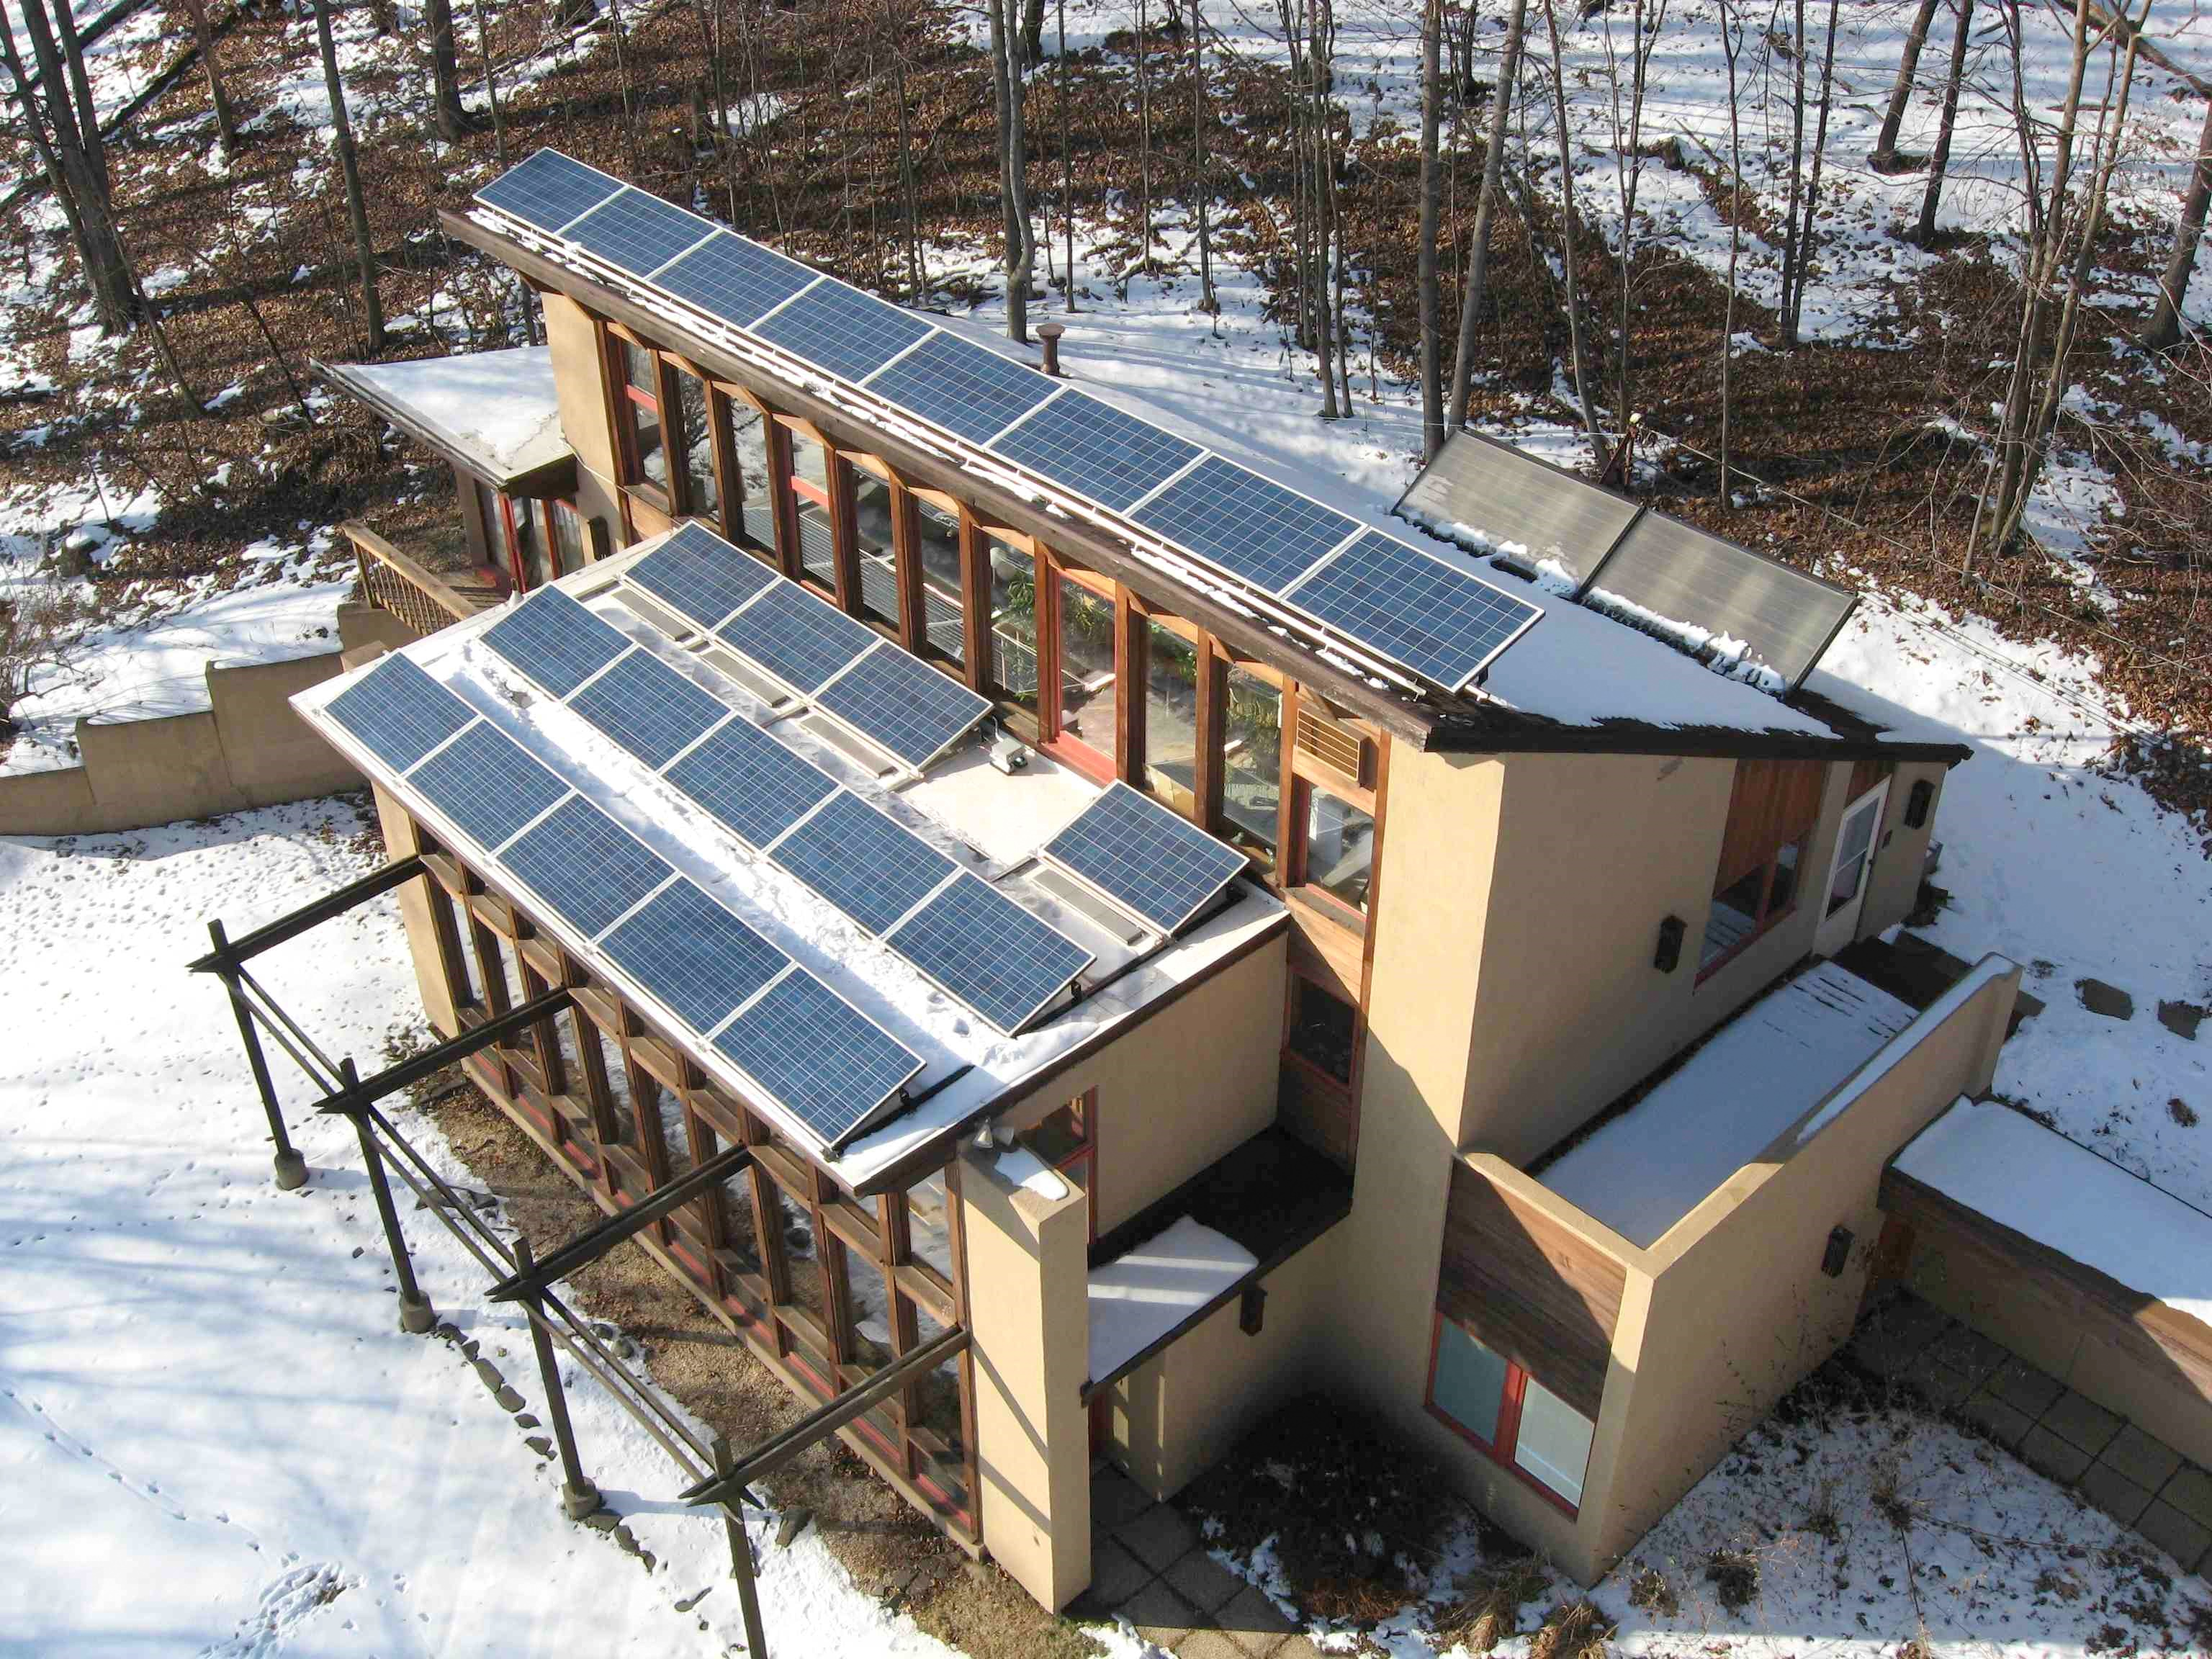 solar home designs new home designs latest solar home designs